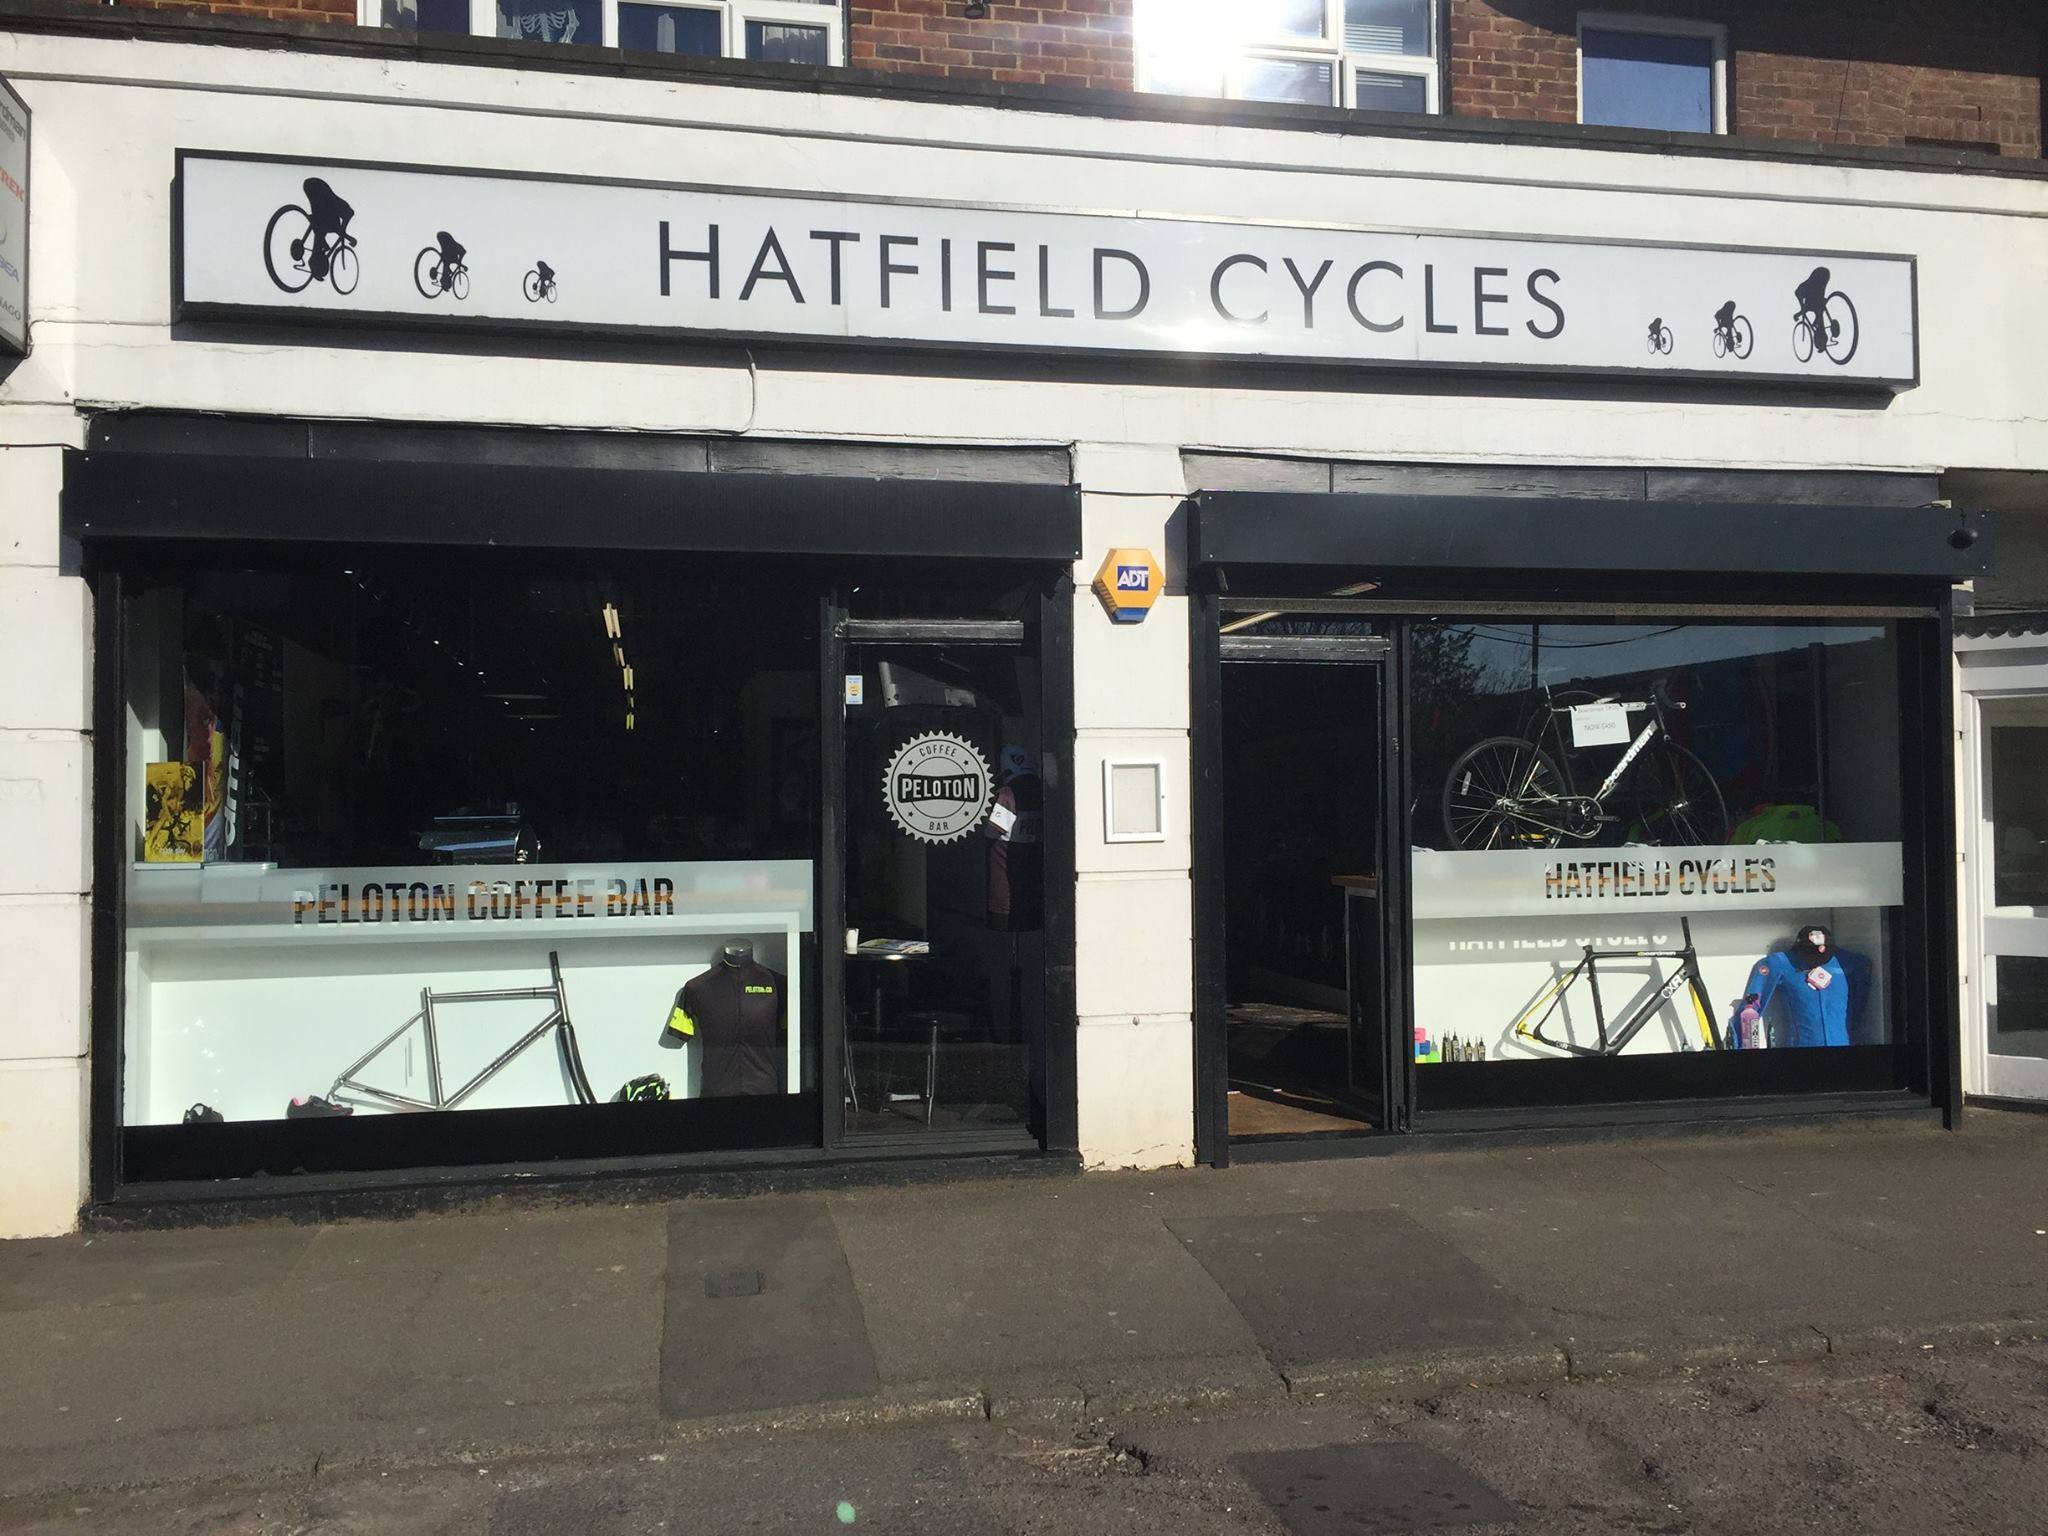 Hatfield Cycles shop front